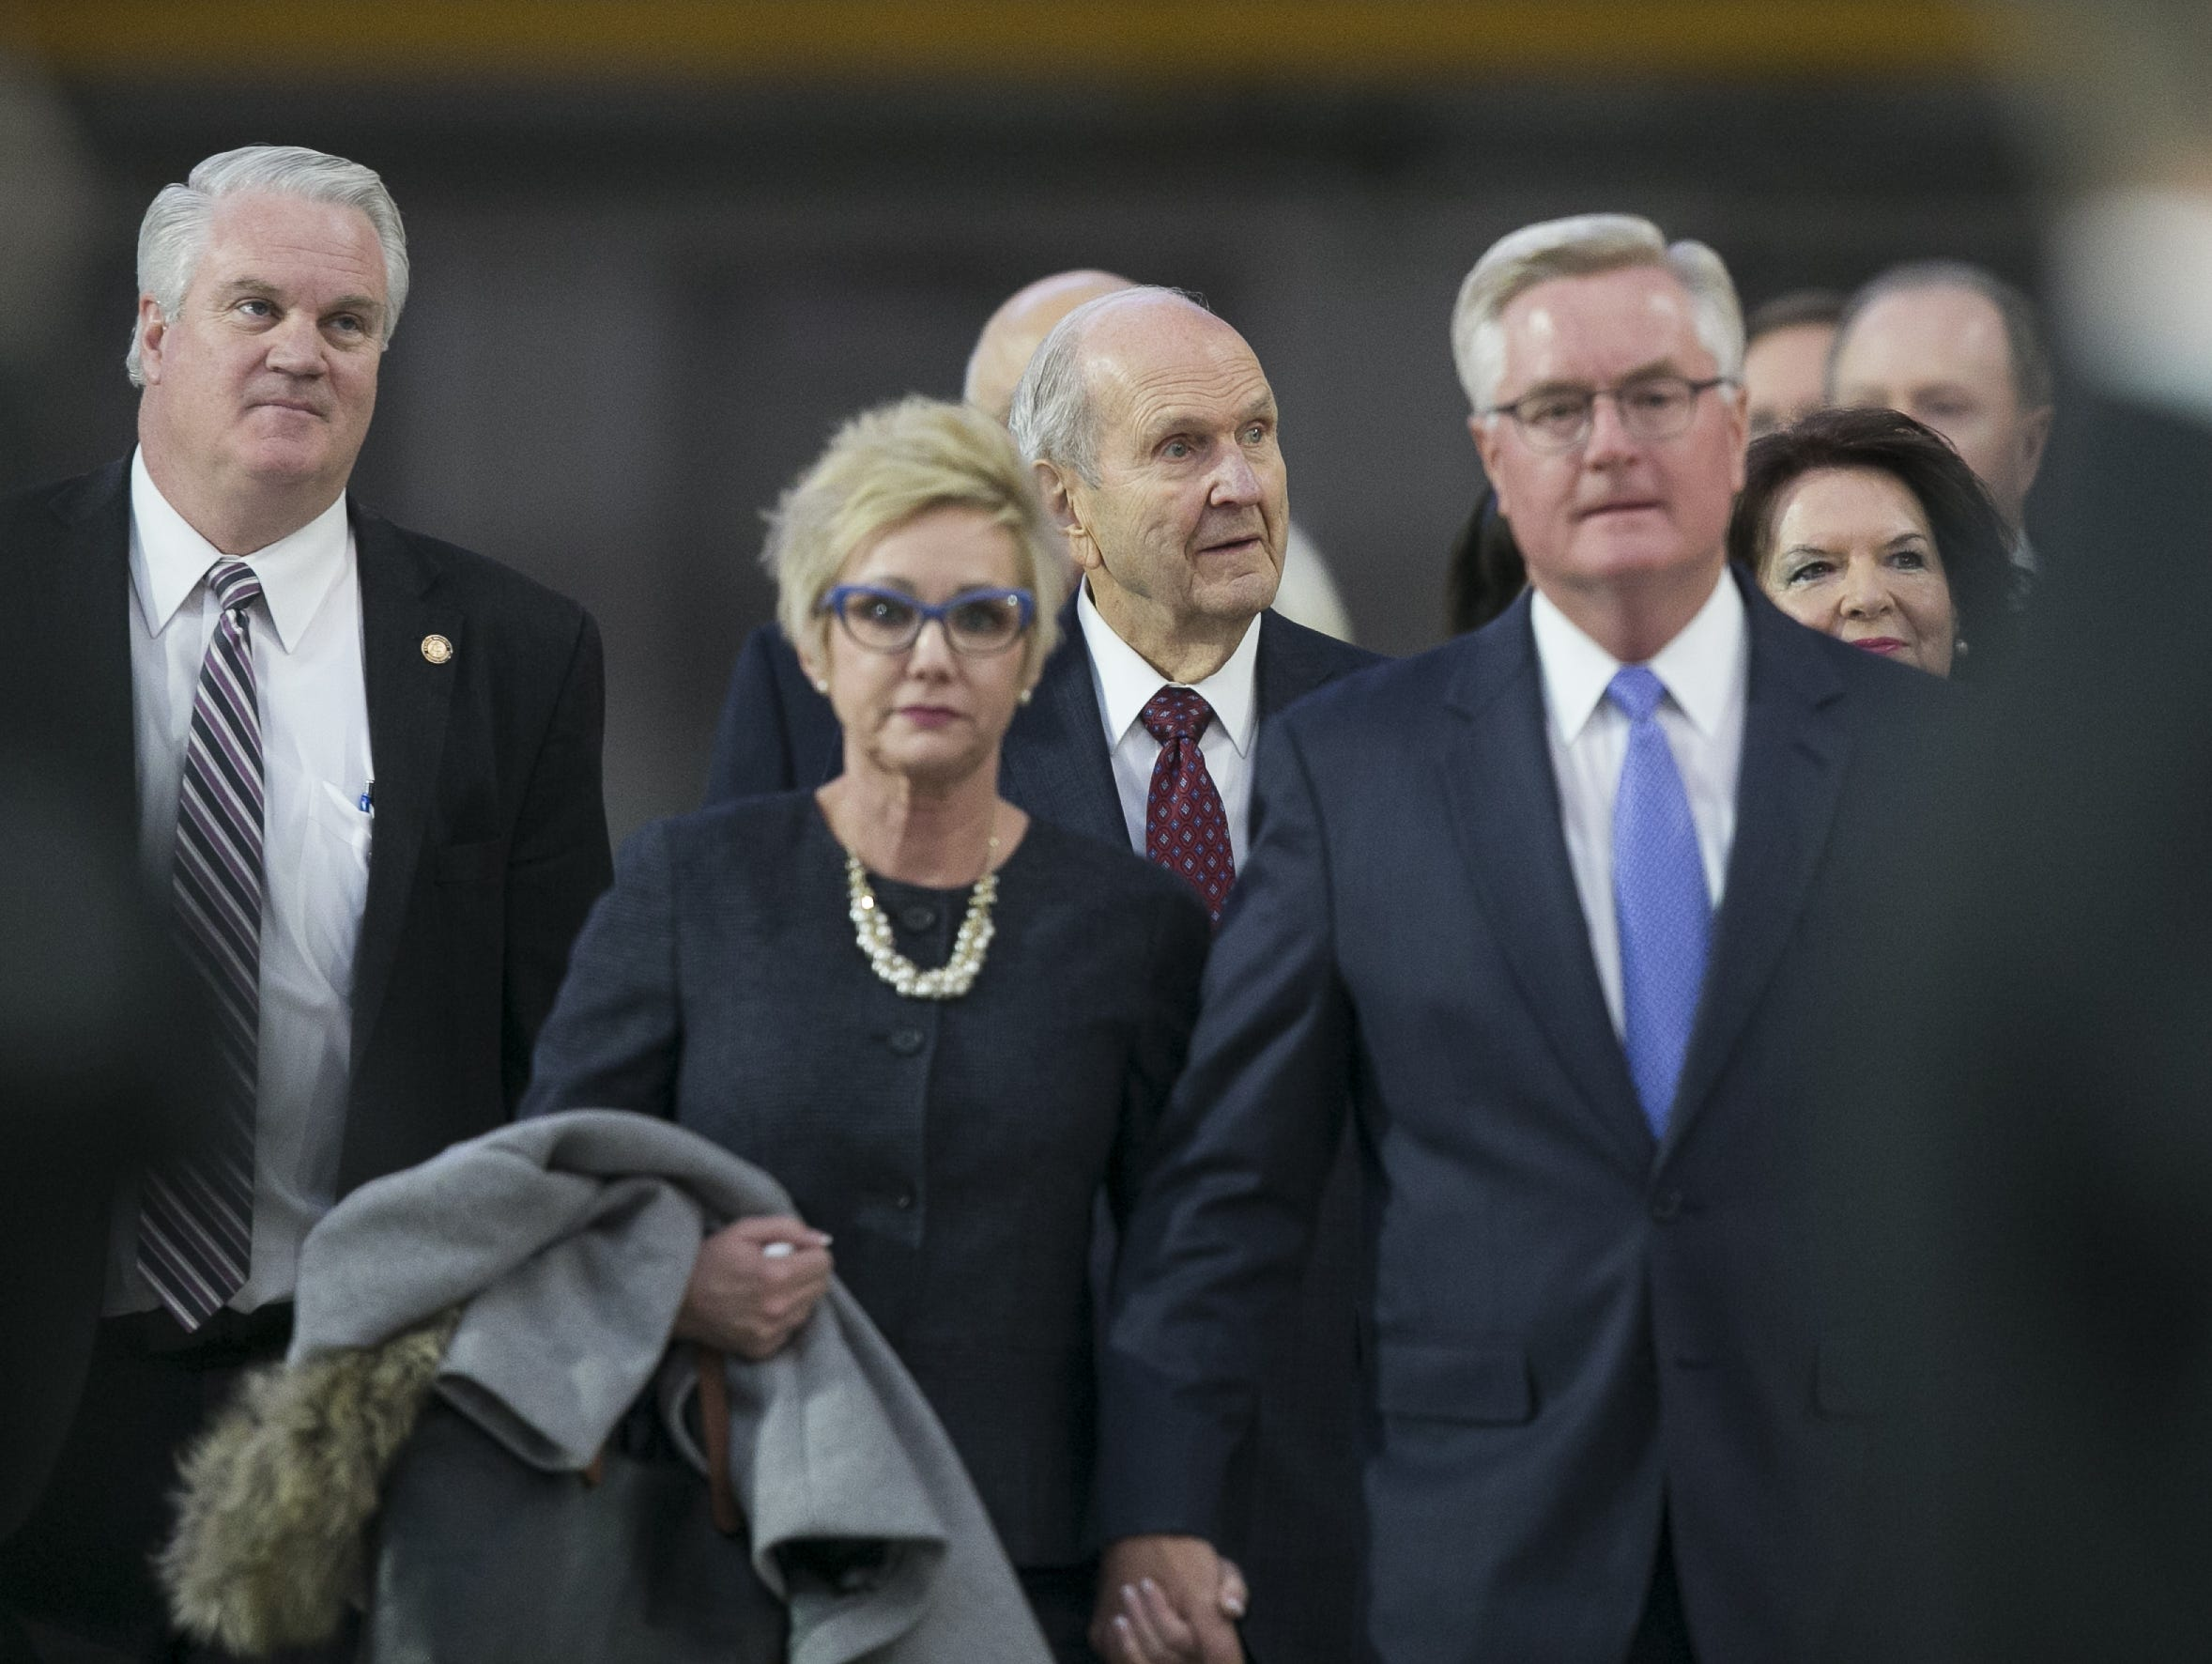 Russell Nelson (center), the president of the Church of Jesus Christ of Latter-day Saints arrives at State Farm Stadium before speaking at a devotional in Glendale, Arizona on Sunday, Feb. 10, 2019.